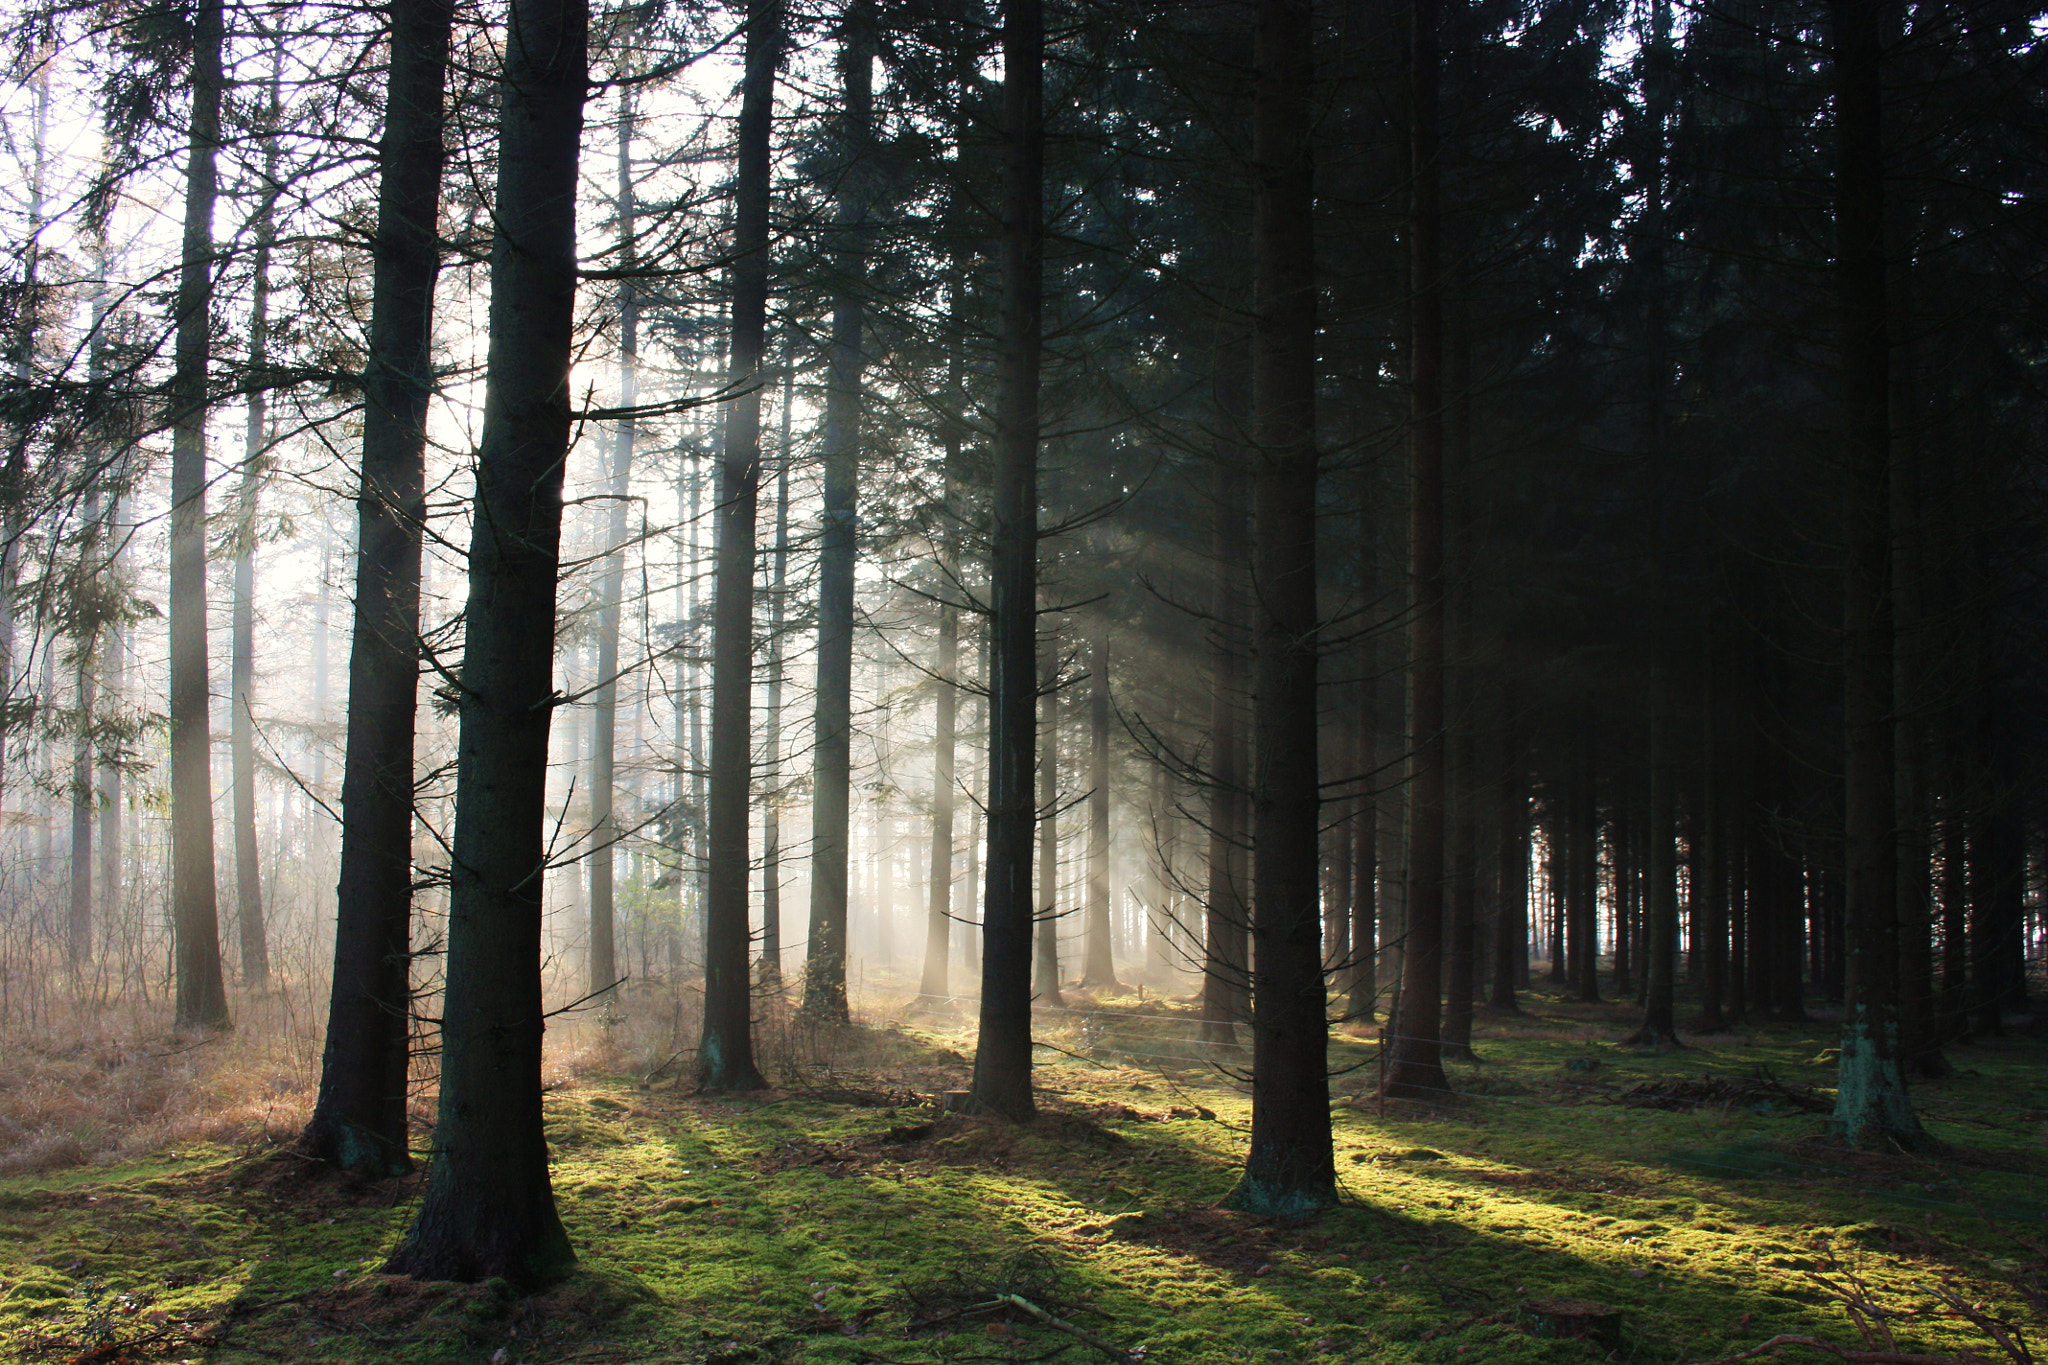 Photograph sunrays in a forest by Rinko Looyenga on 500px